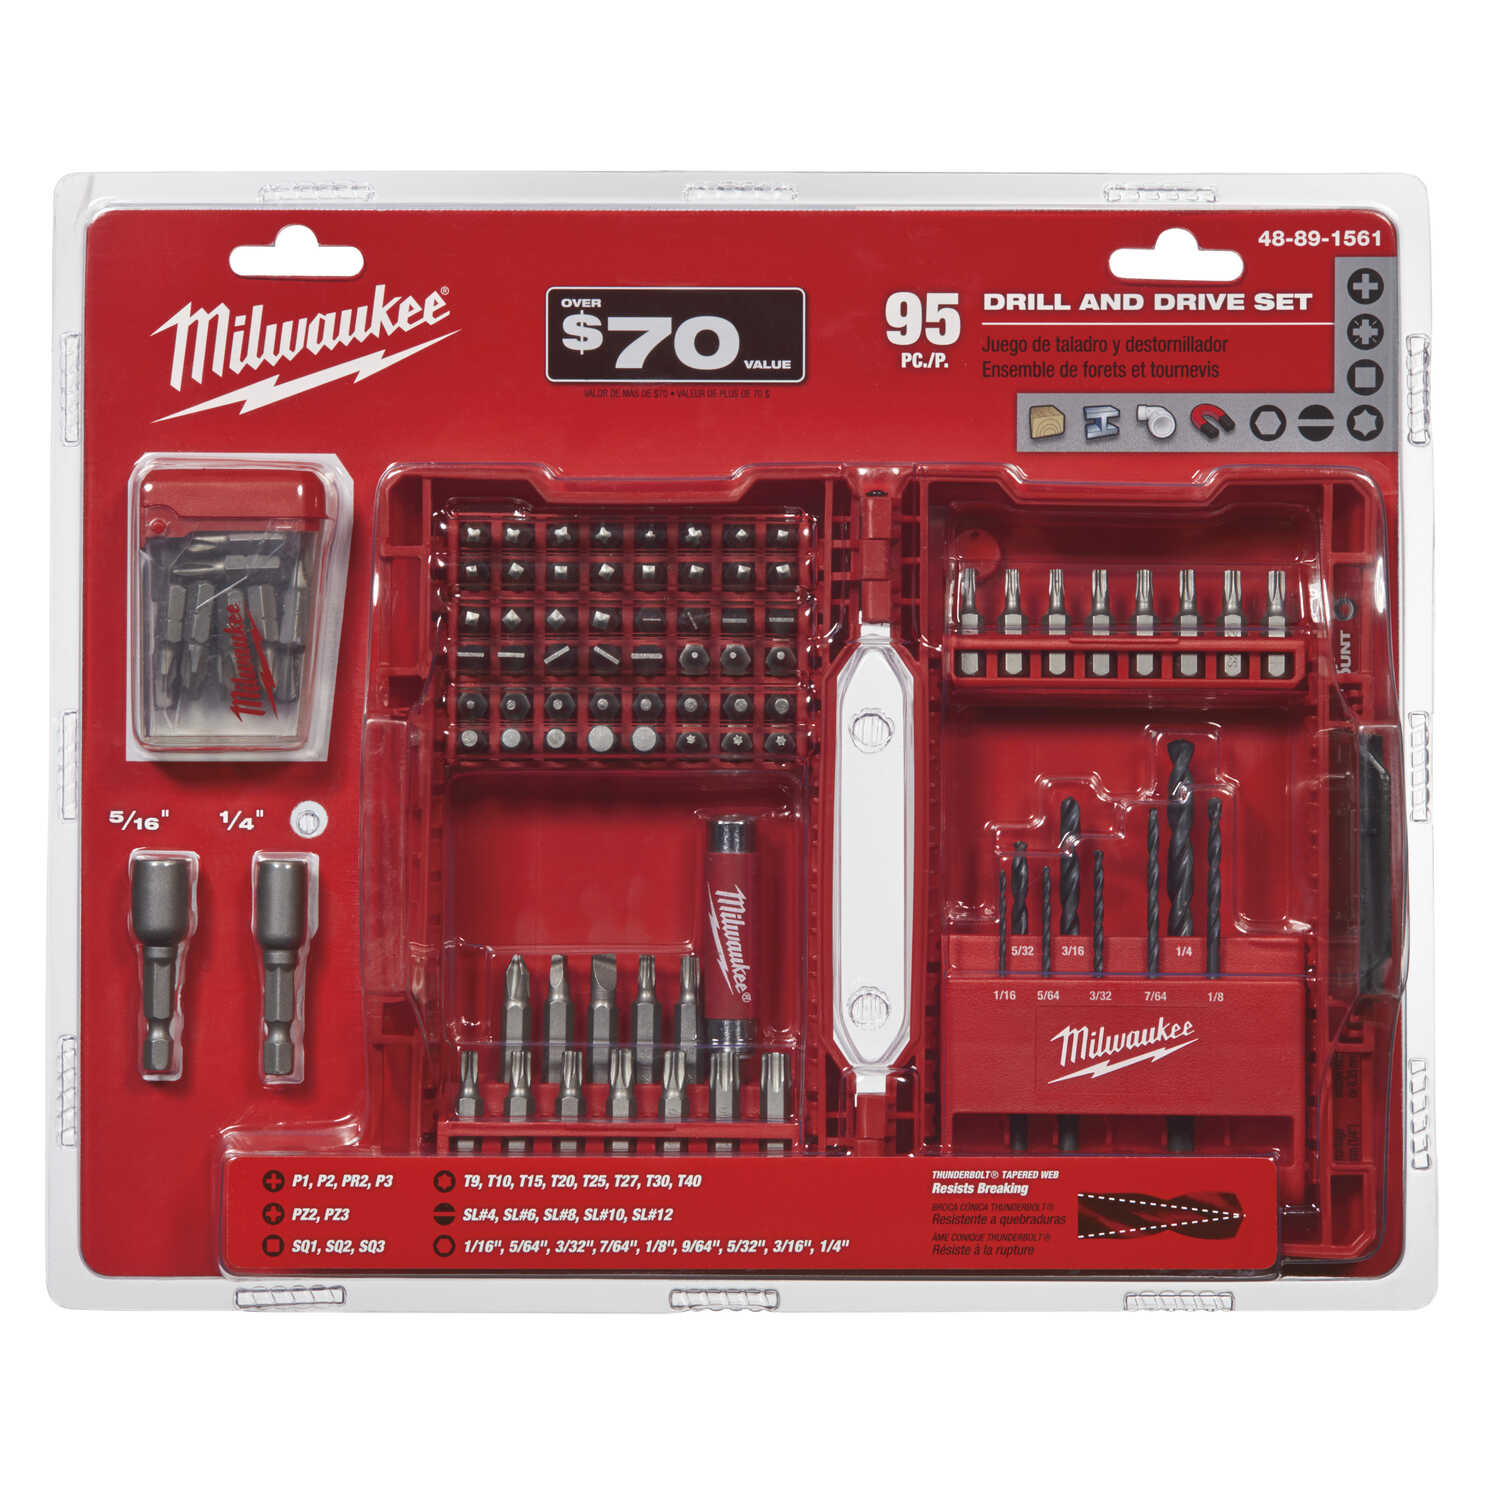 Milwaukee  SHOCKWAVE  Assorted  1 in. L Drill and Driver Bit Set  Steel  95 pc. Hex Shank  1/4 in.